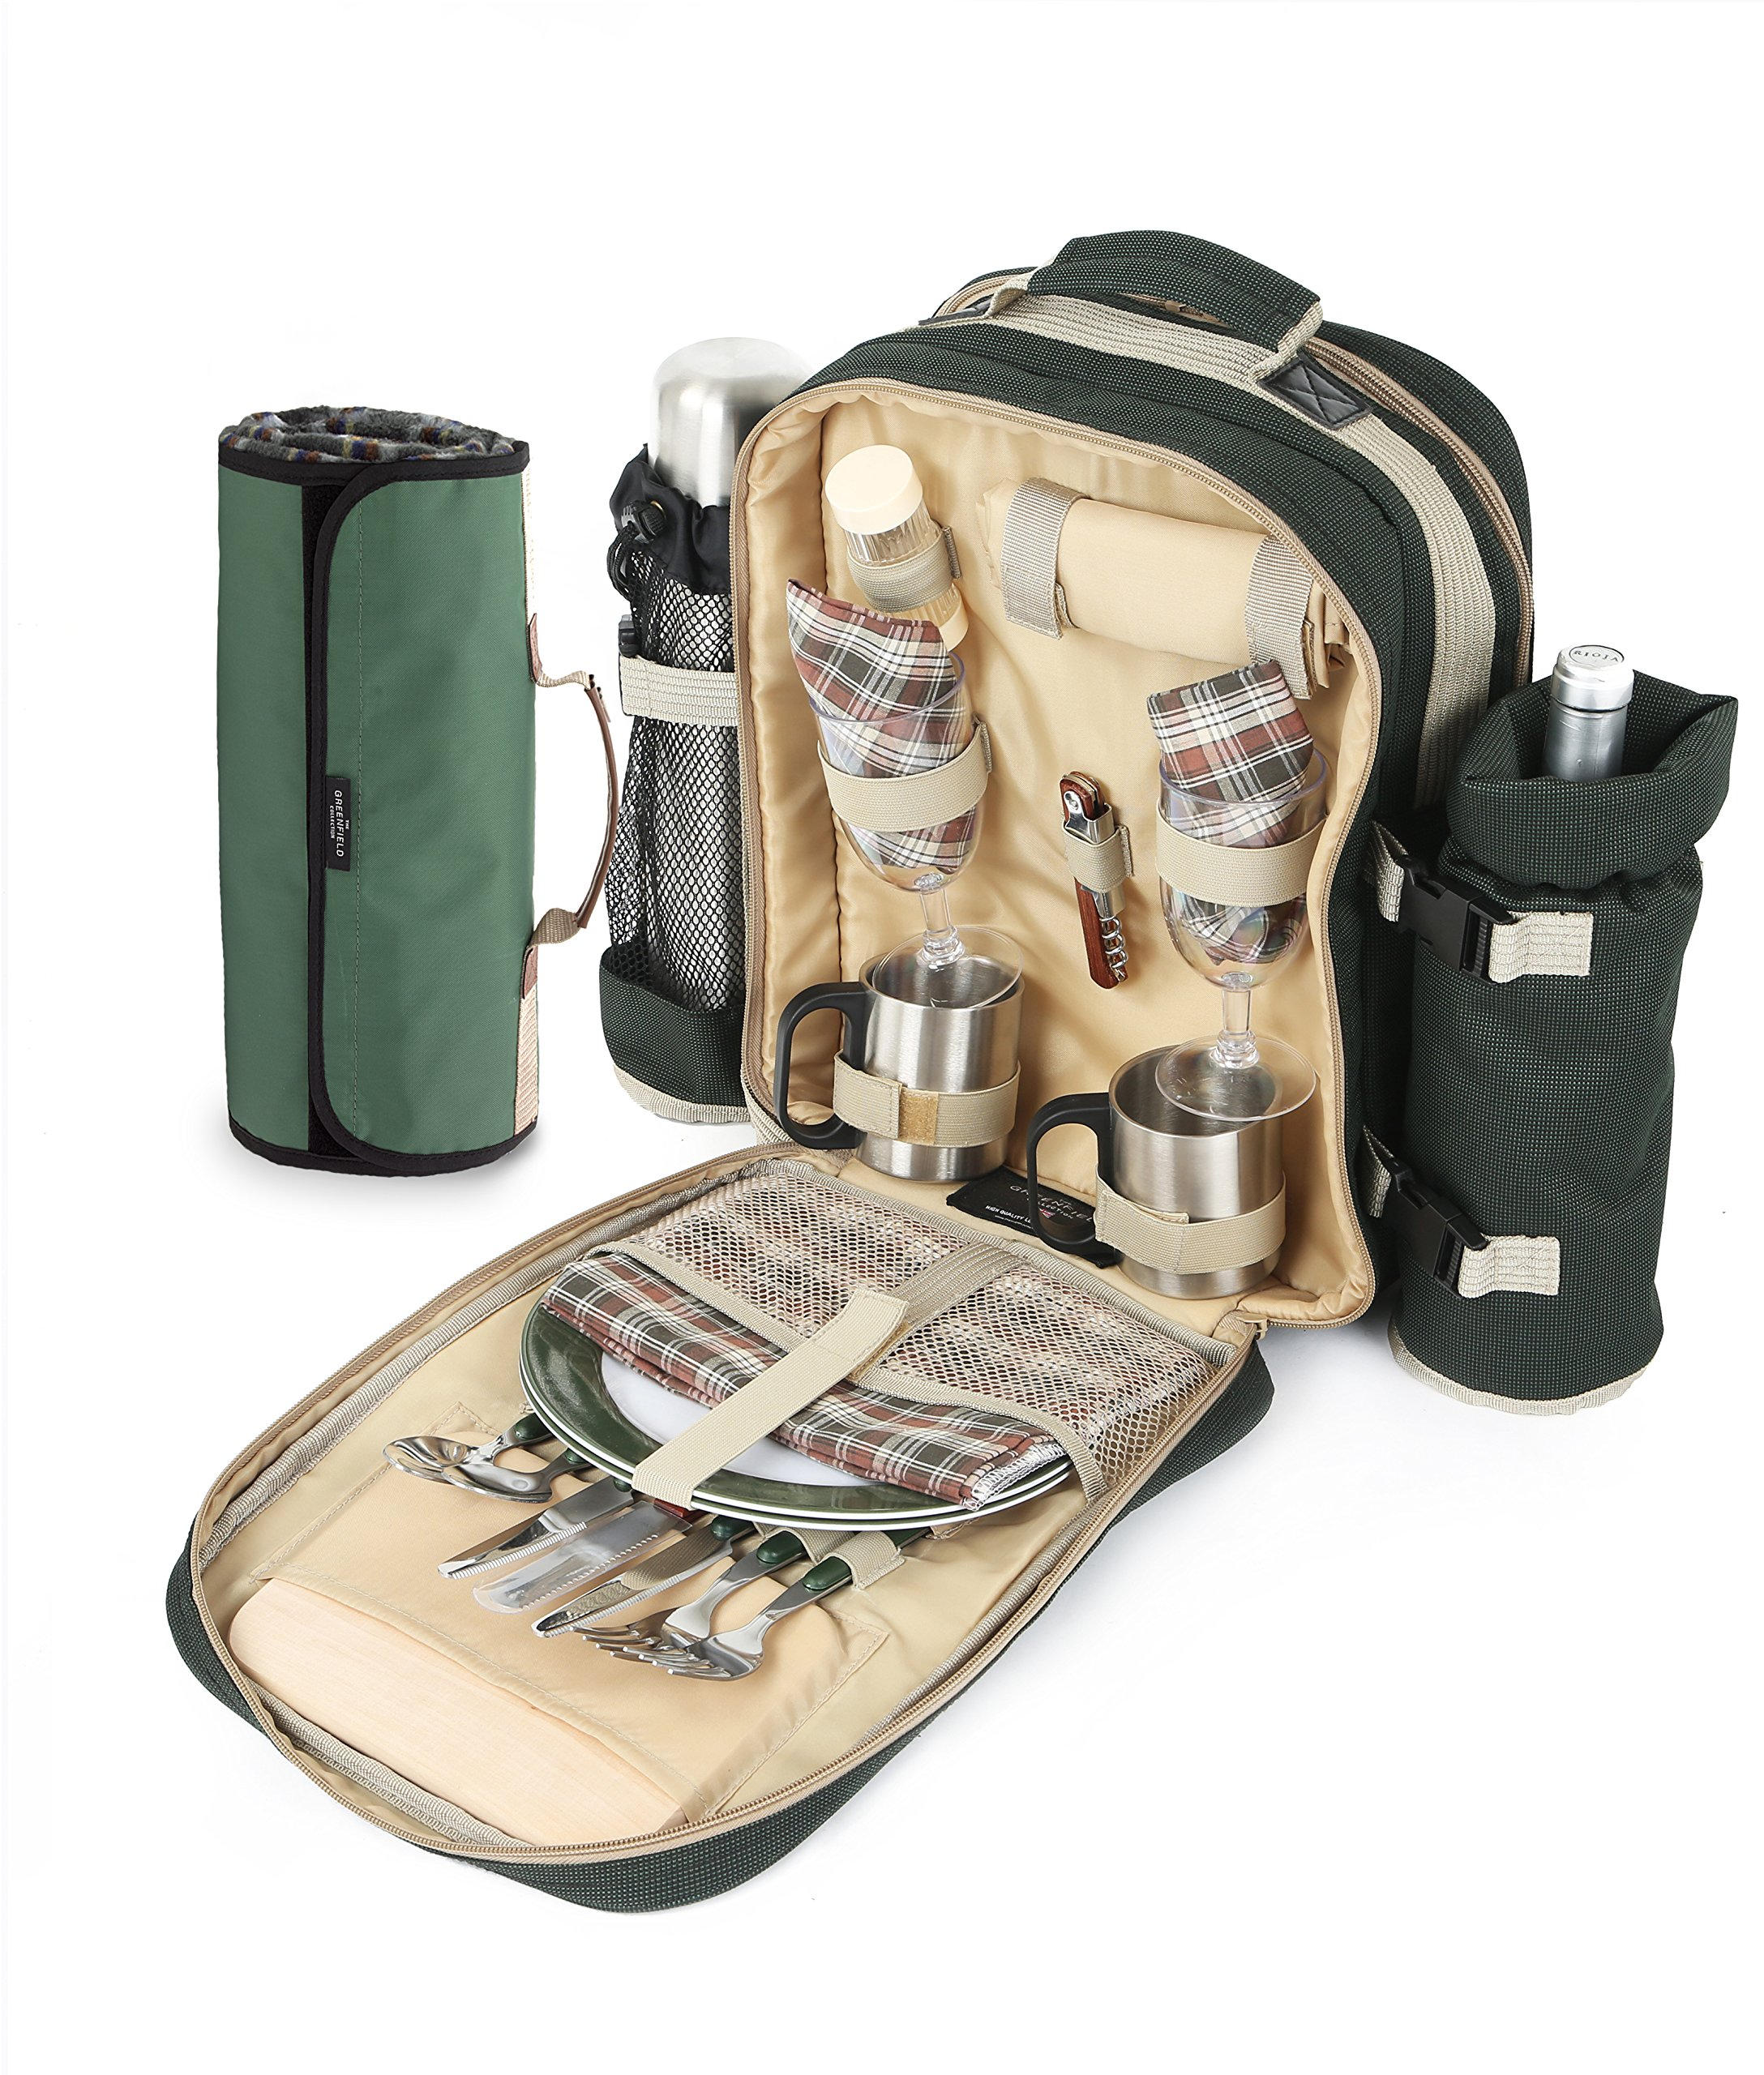 Greenfield Collection Super Deluxe Forest Green Picnic Backpack Hamper for Two People with Matching Picnic Blanket by Greenfield Collection (Image #1)